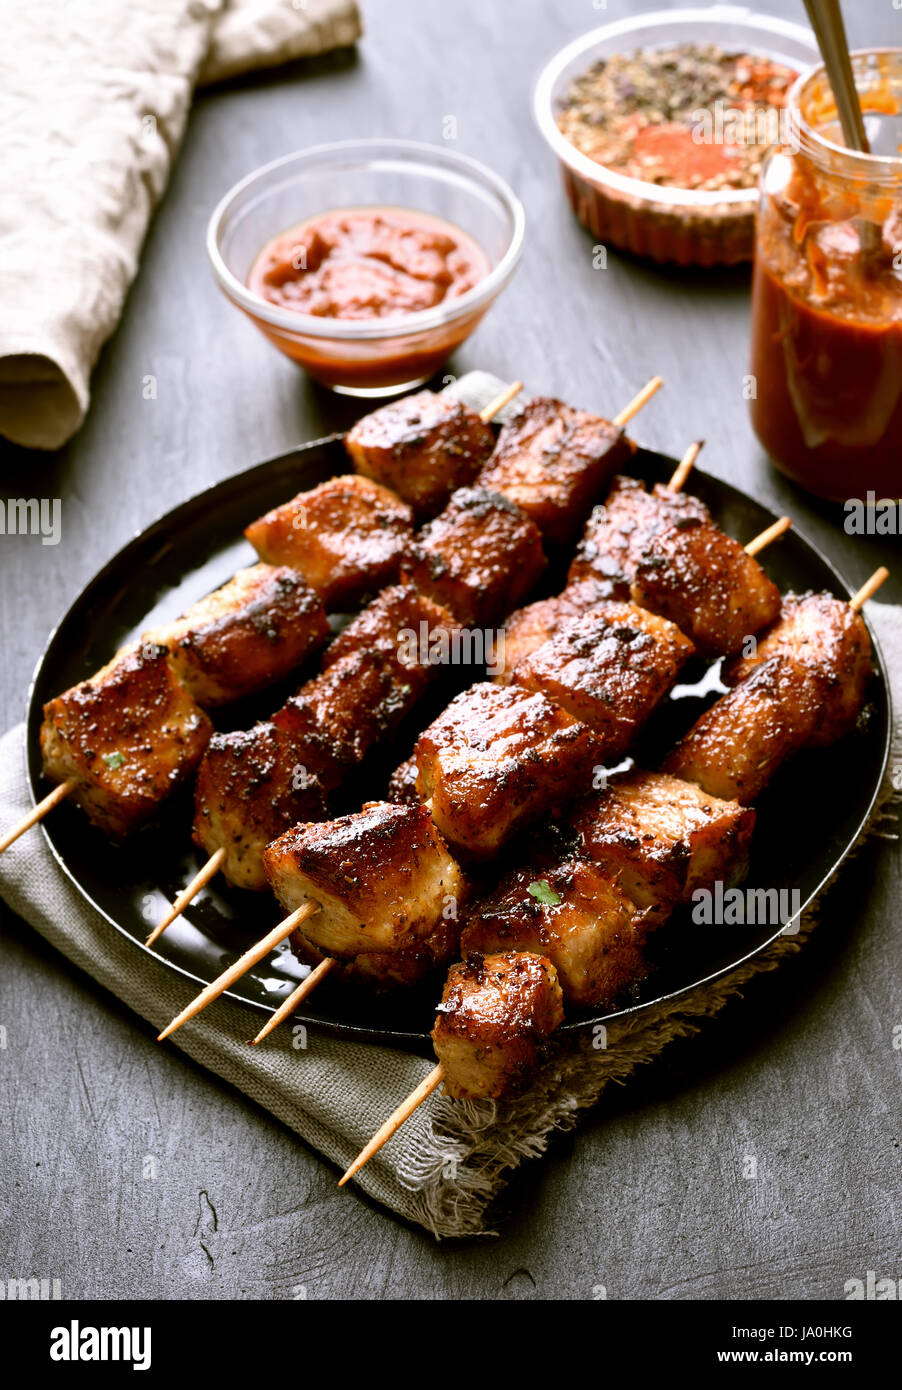 Grilled pork skewers on plate over dark stone background - Stock Image